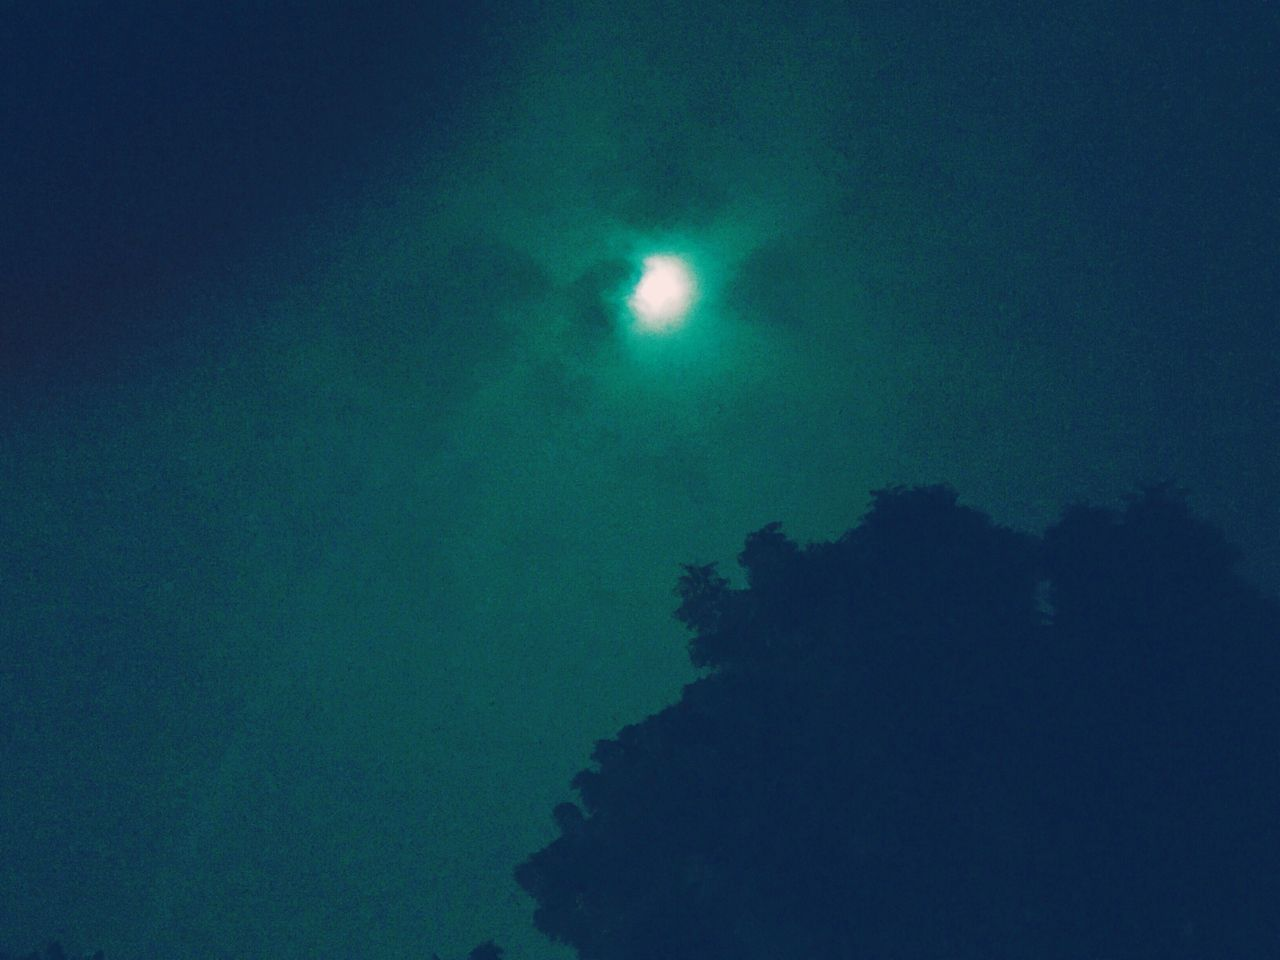 night, moon, illuminated, low angle view, nature, outdoors, no people, sky, half moon, beauty in nature, tree, astronomy